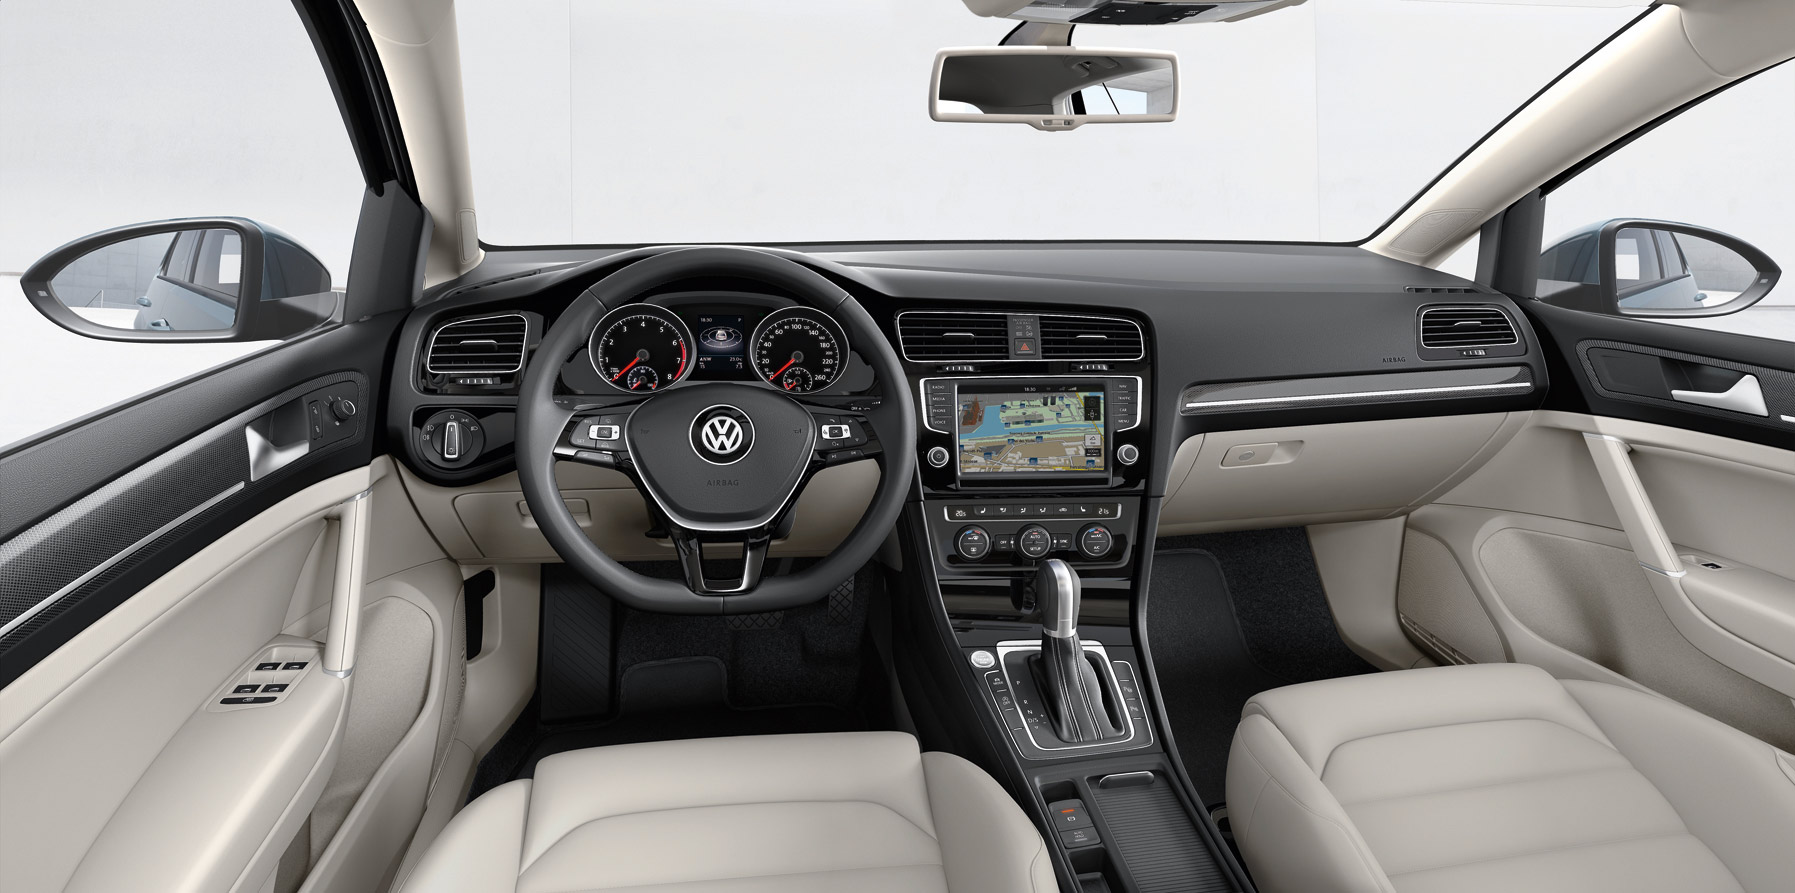 volkswagen-golf-7-interior-9